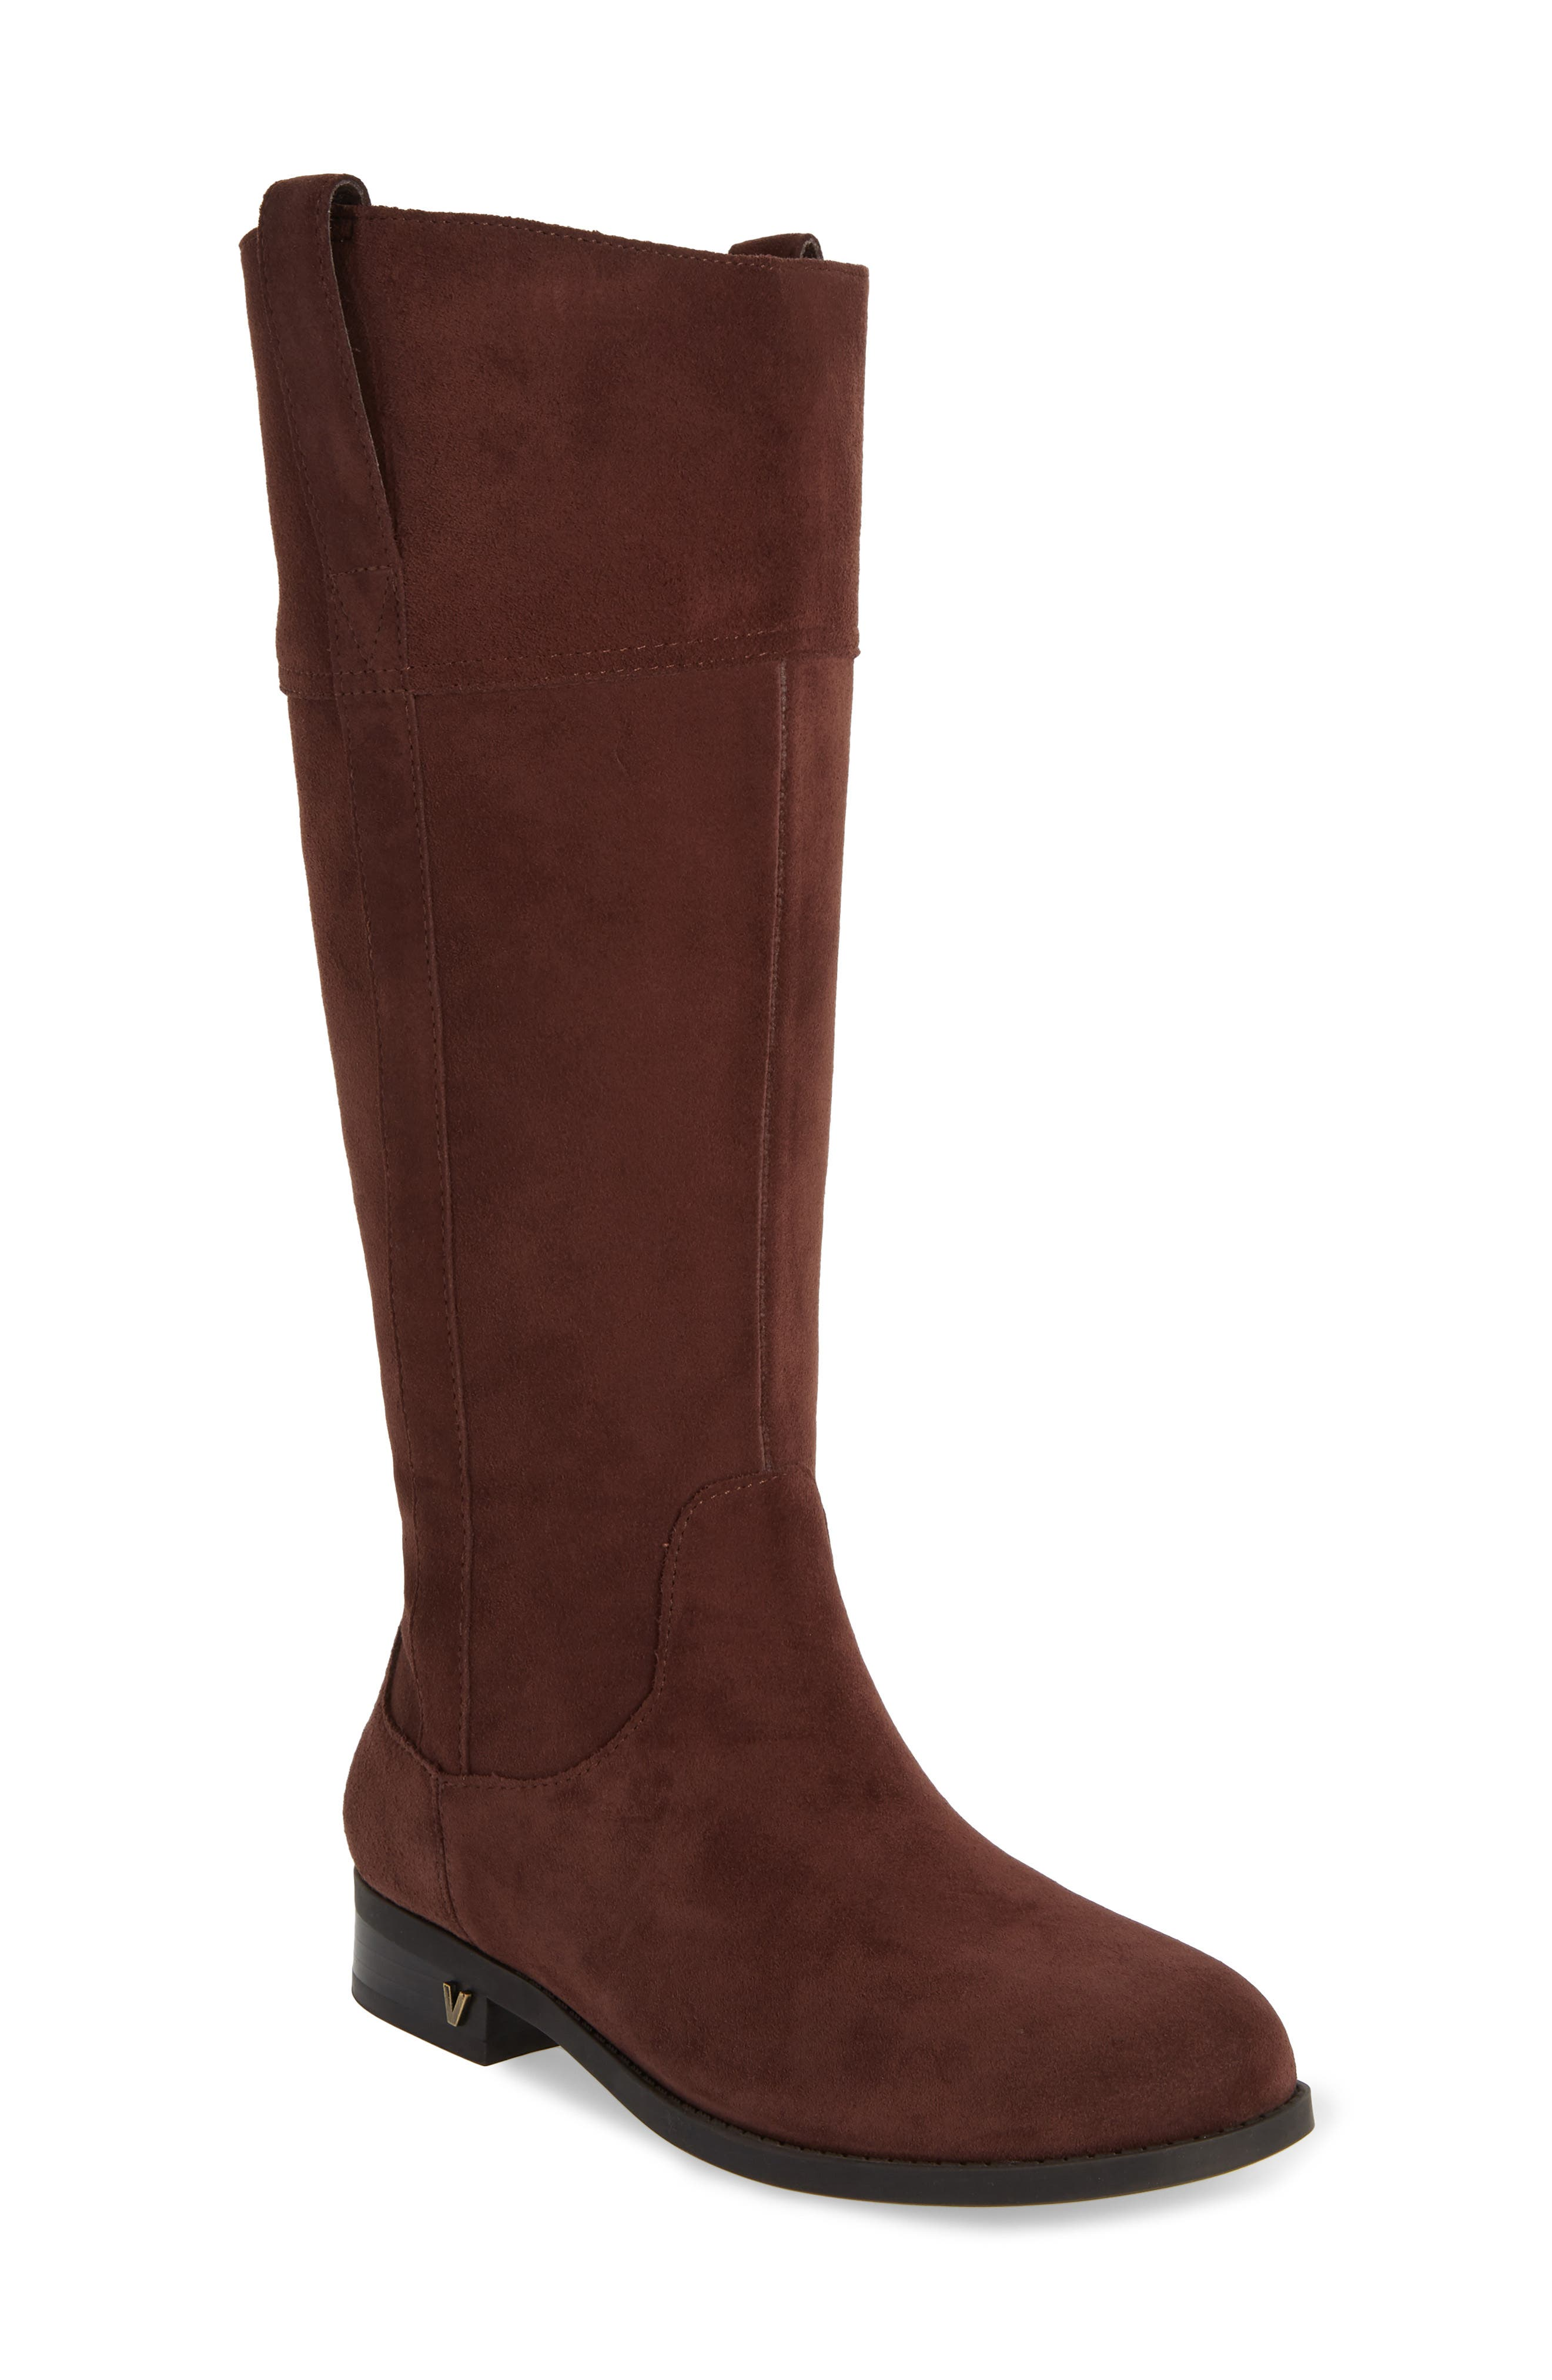 Downing Boot,                         Main,                         color, CHOCOLATE SUEDE